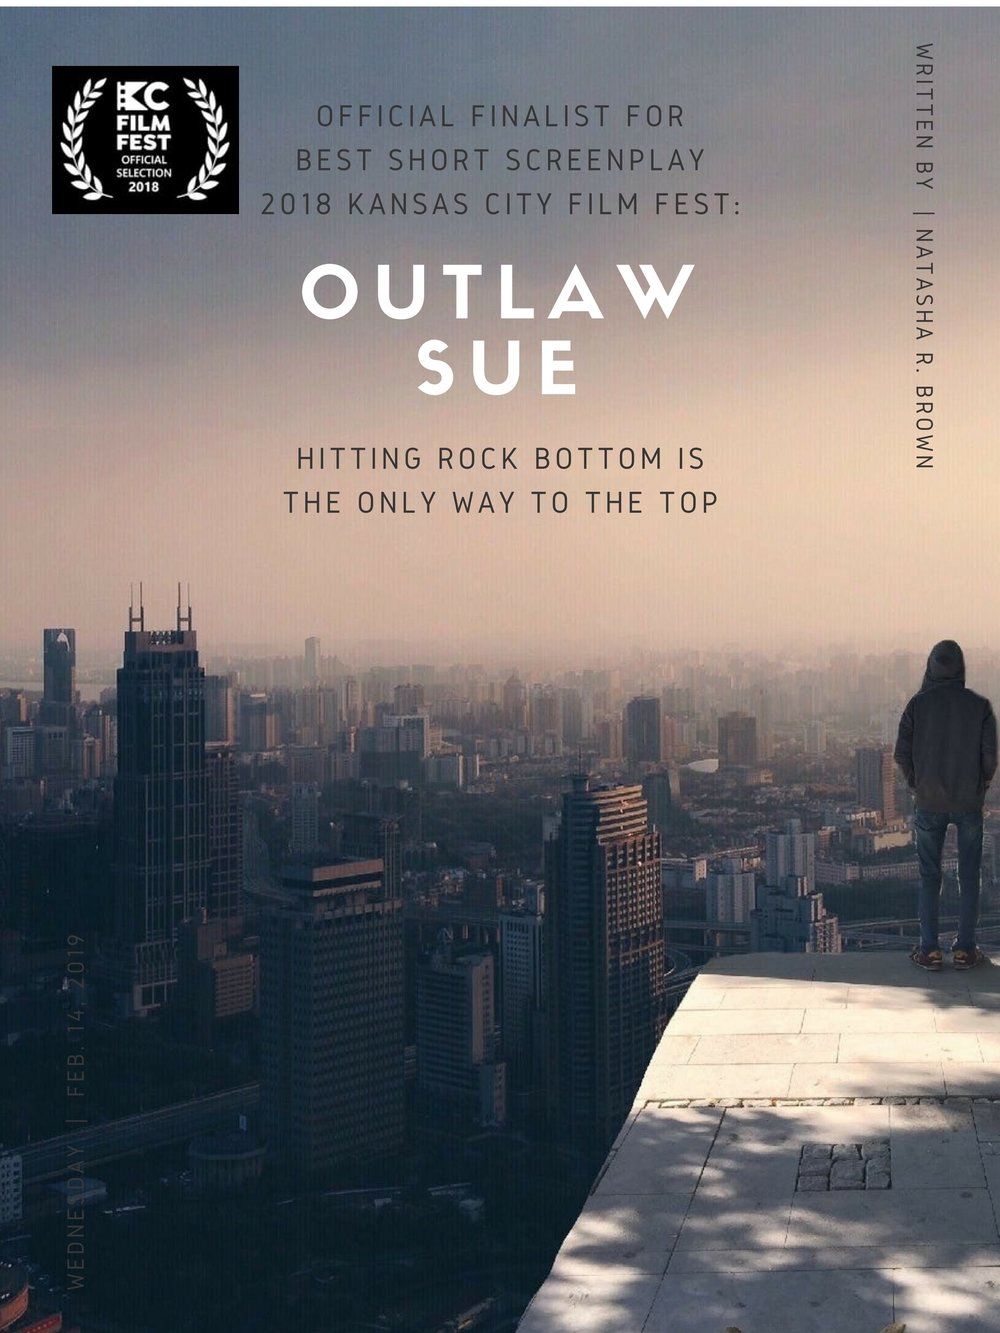 outlaw-sue-poster-6.jpg